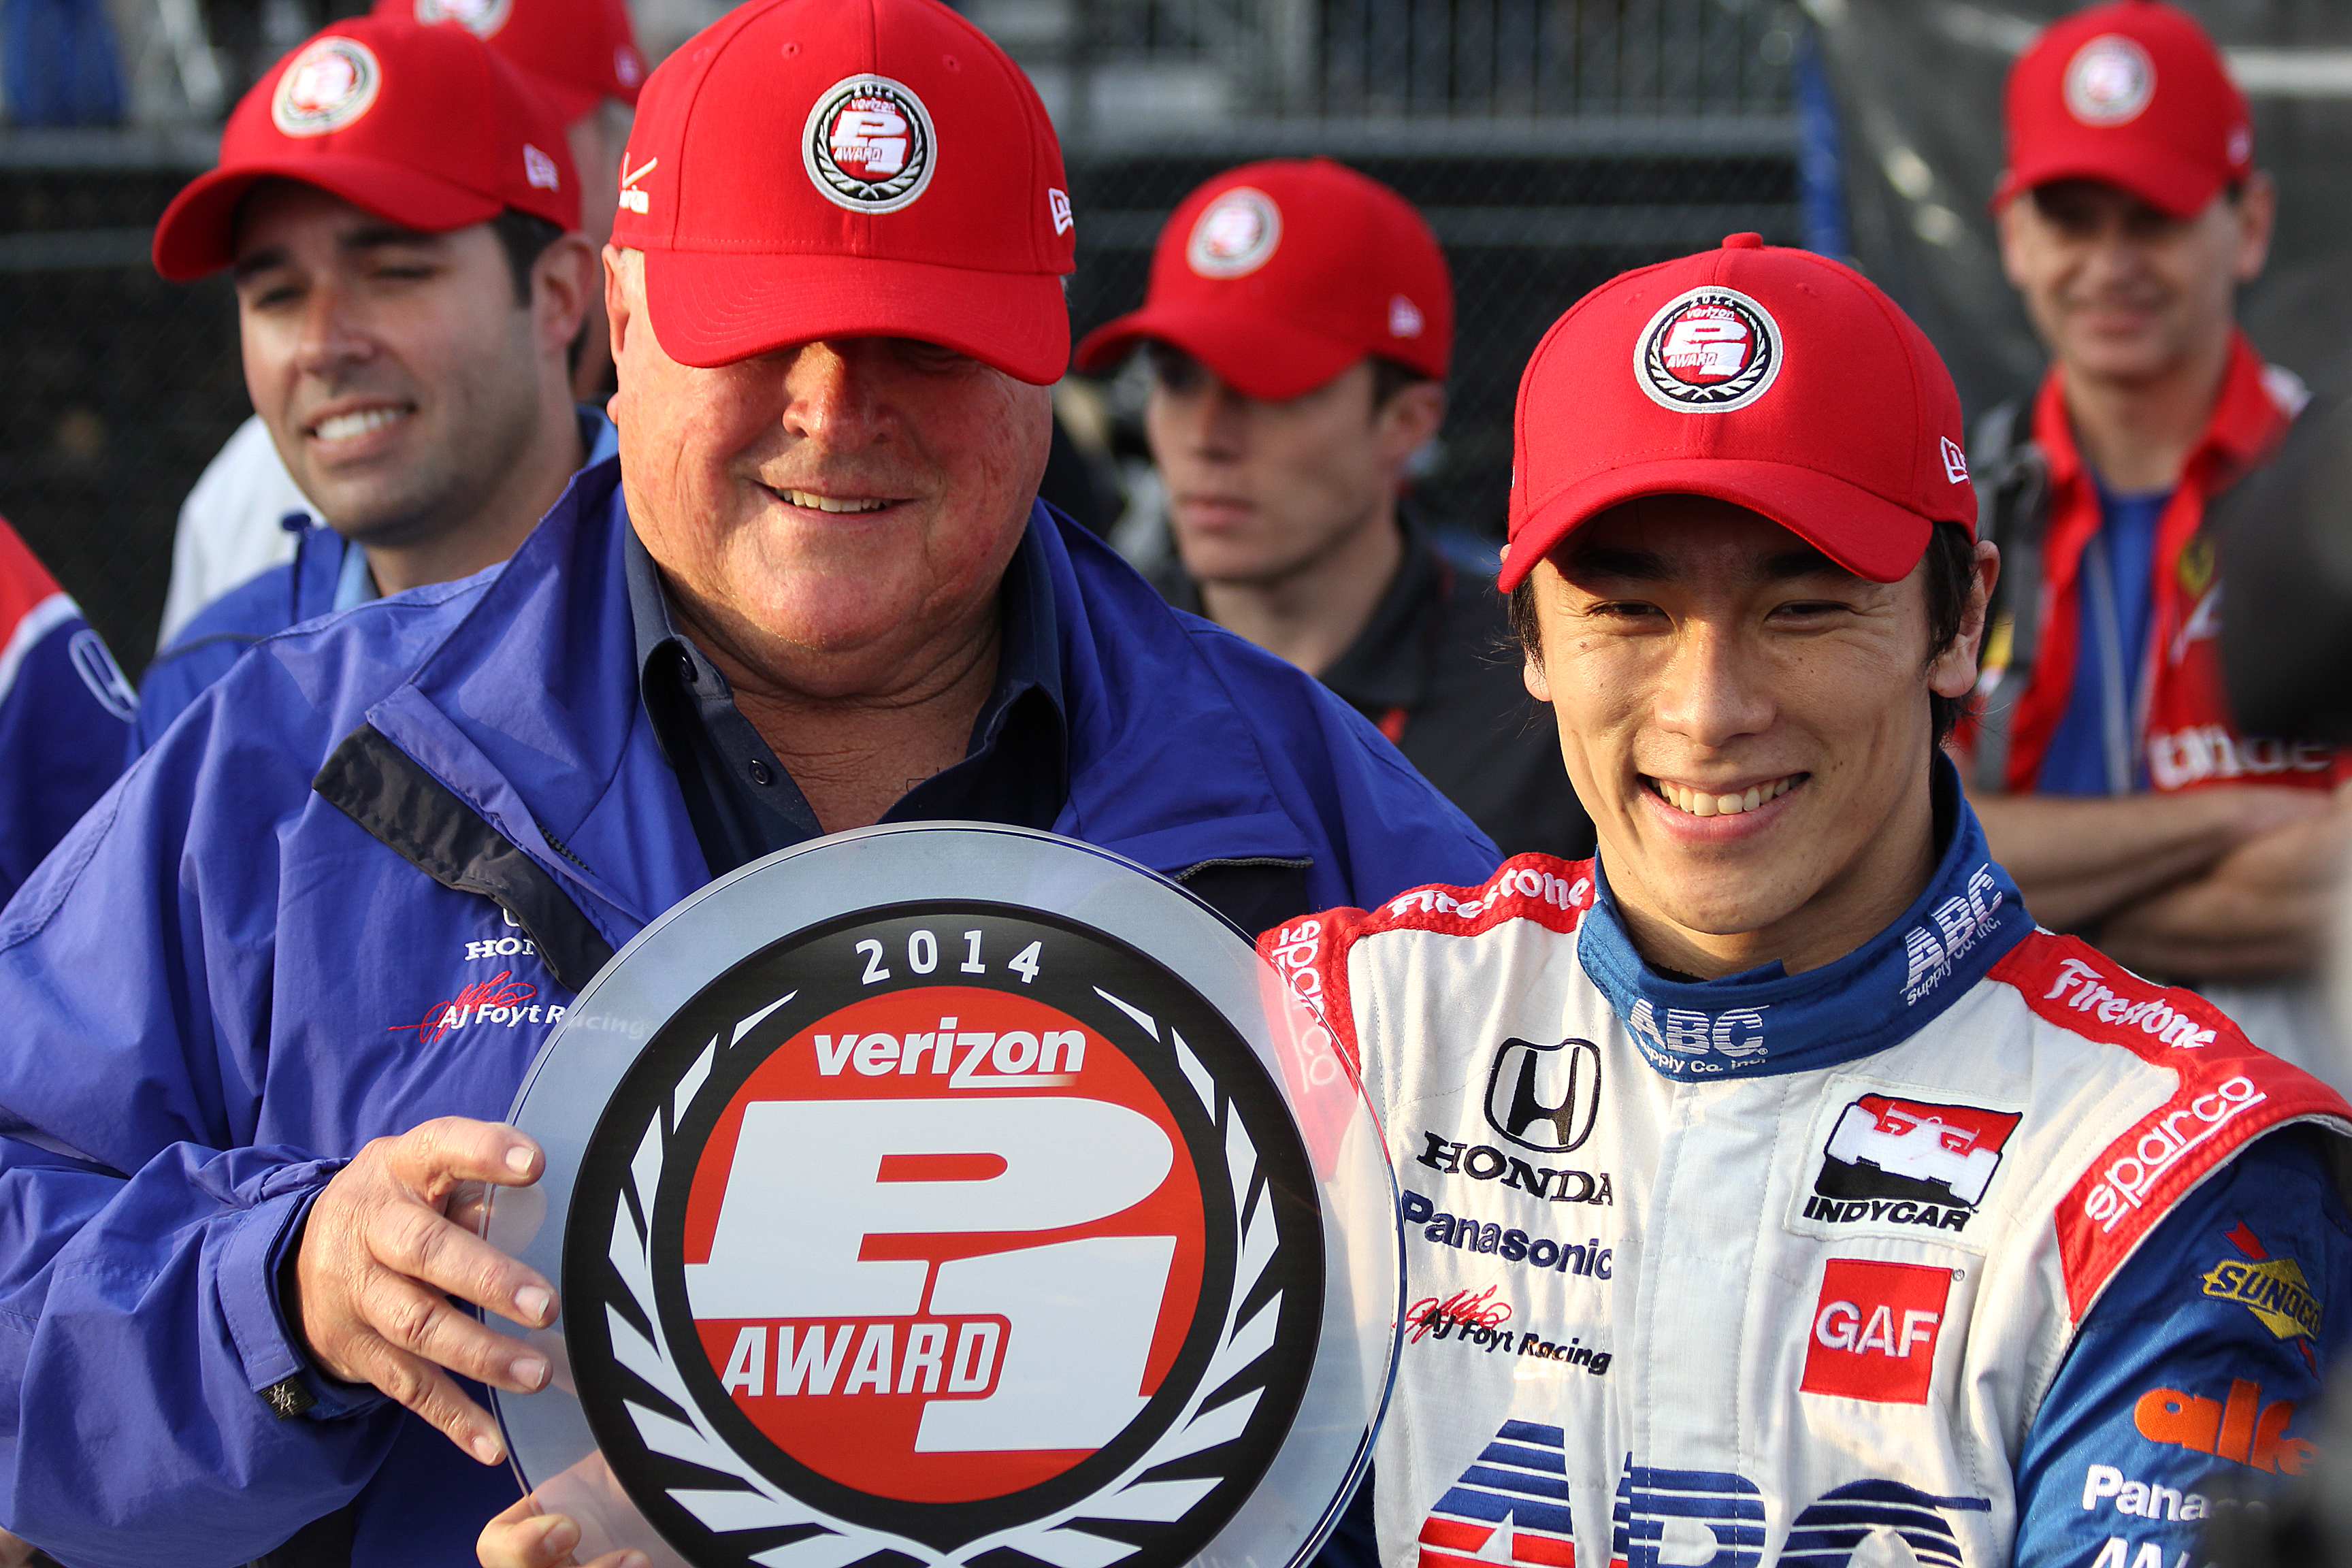 AJ Foyt and Takuma Sato share the Verizon P1 Pole Award after Sato scored the pole for the St. Pete Grand Prix. Saturday, March 29, 2014, in St. Petersburg, Fla. The race starts Sunday afternoon. (Chris Jasurek/Epoch Times)